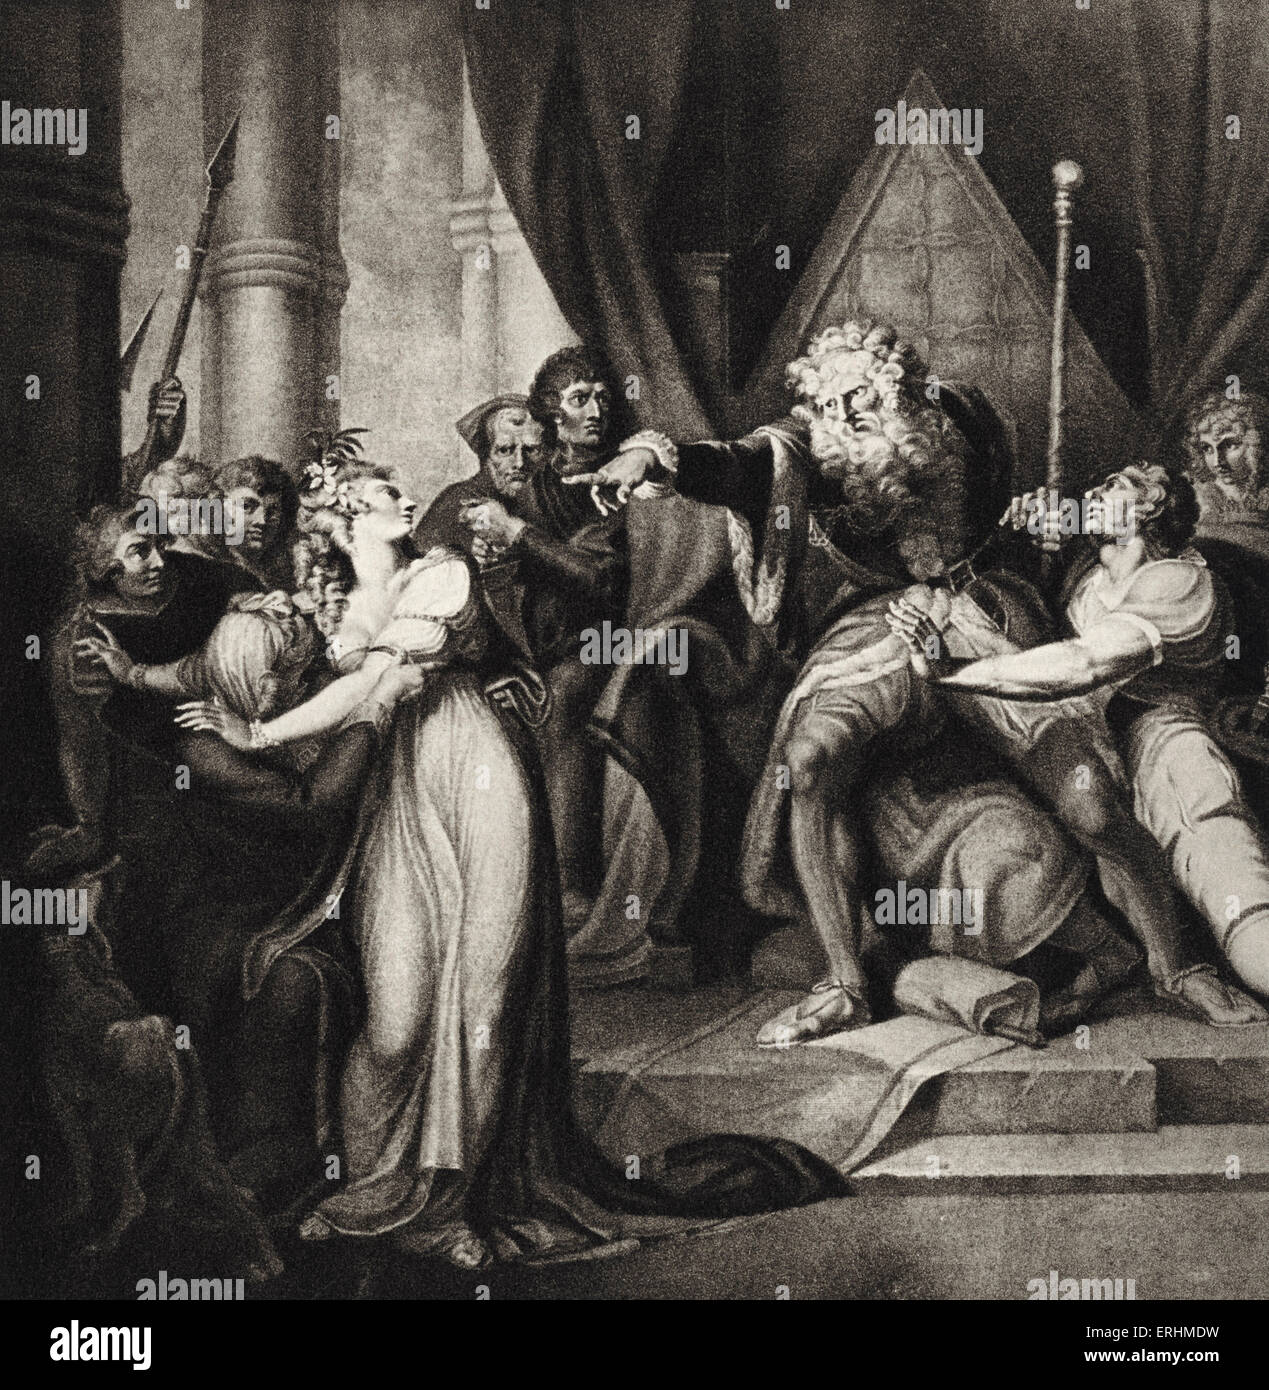 an analysis of the character of macbeth in the play macbeth by william shakespeare Driven to bloody deeds by their lust for power, macbeth and his lady fight to hold  on to  from the first words of the play until the title character loses his head,.